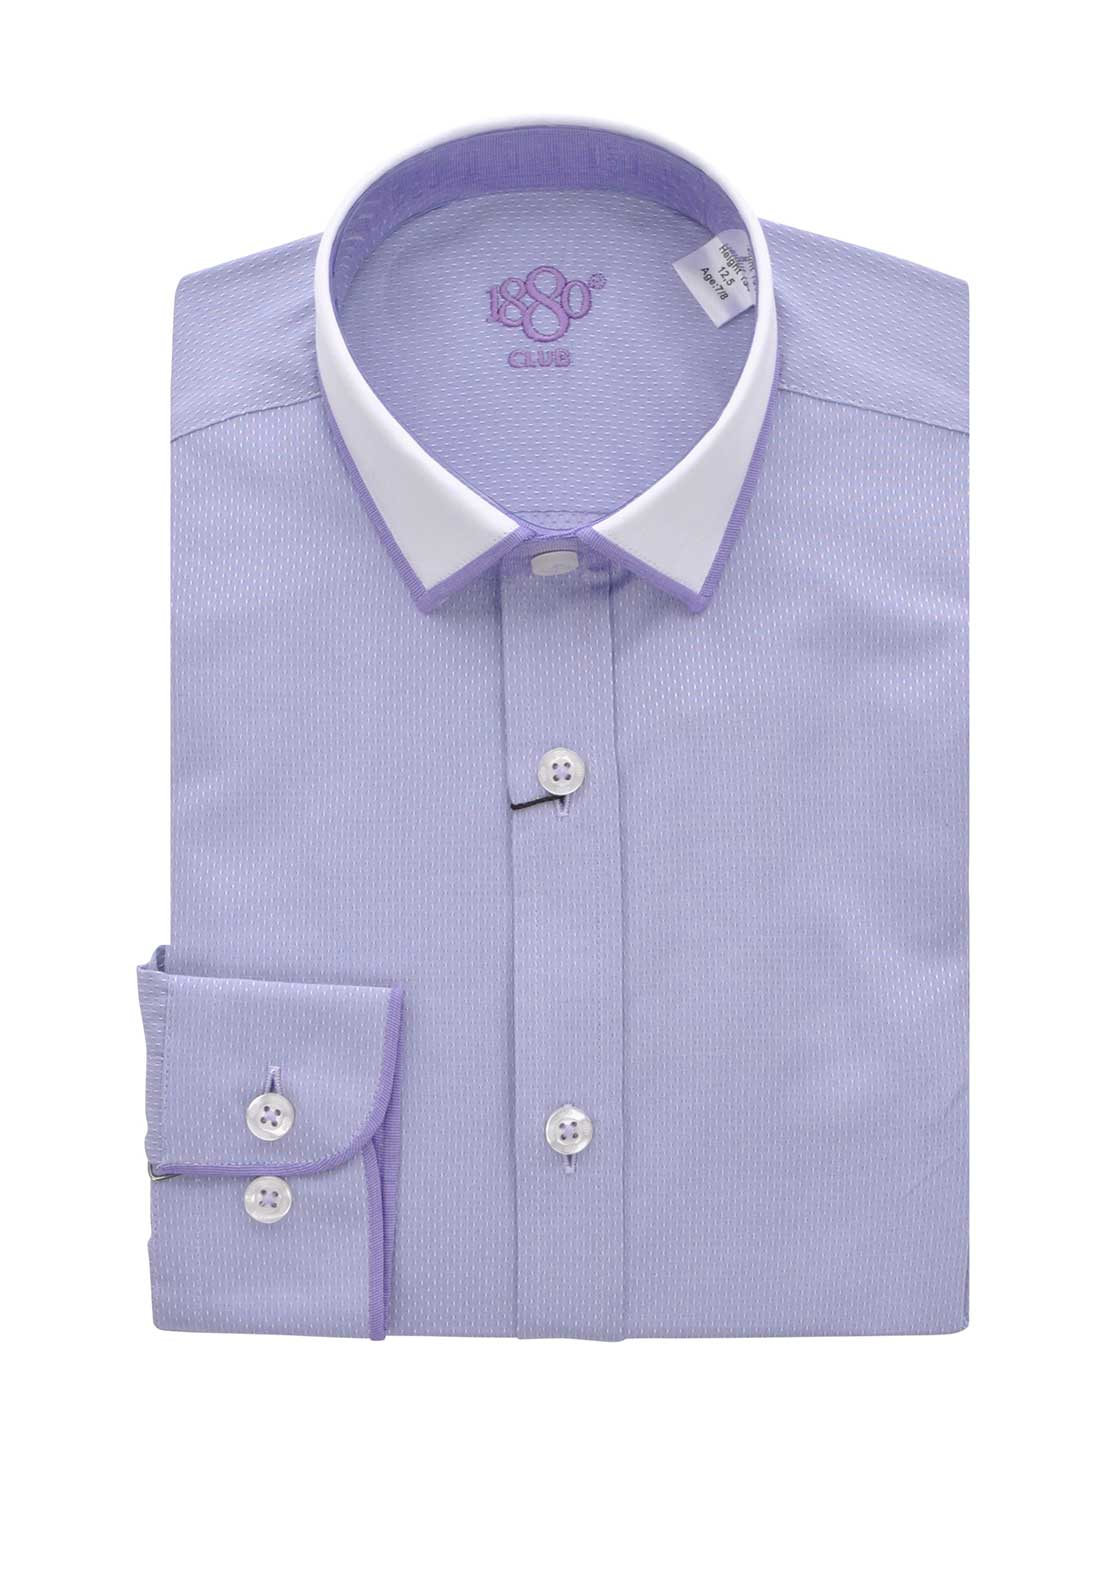 1880 Club Boys Long Sleeve Embossed Shirt, Purple